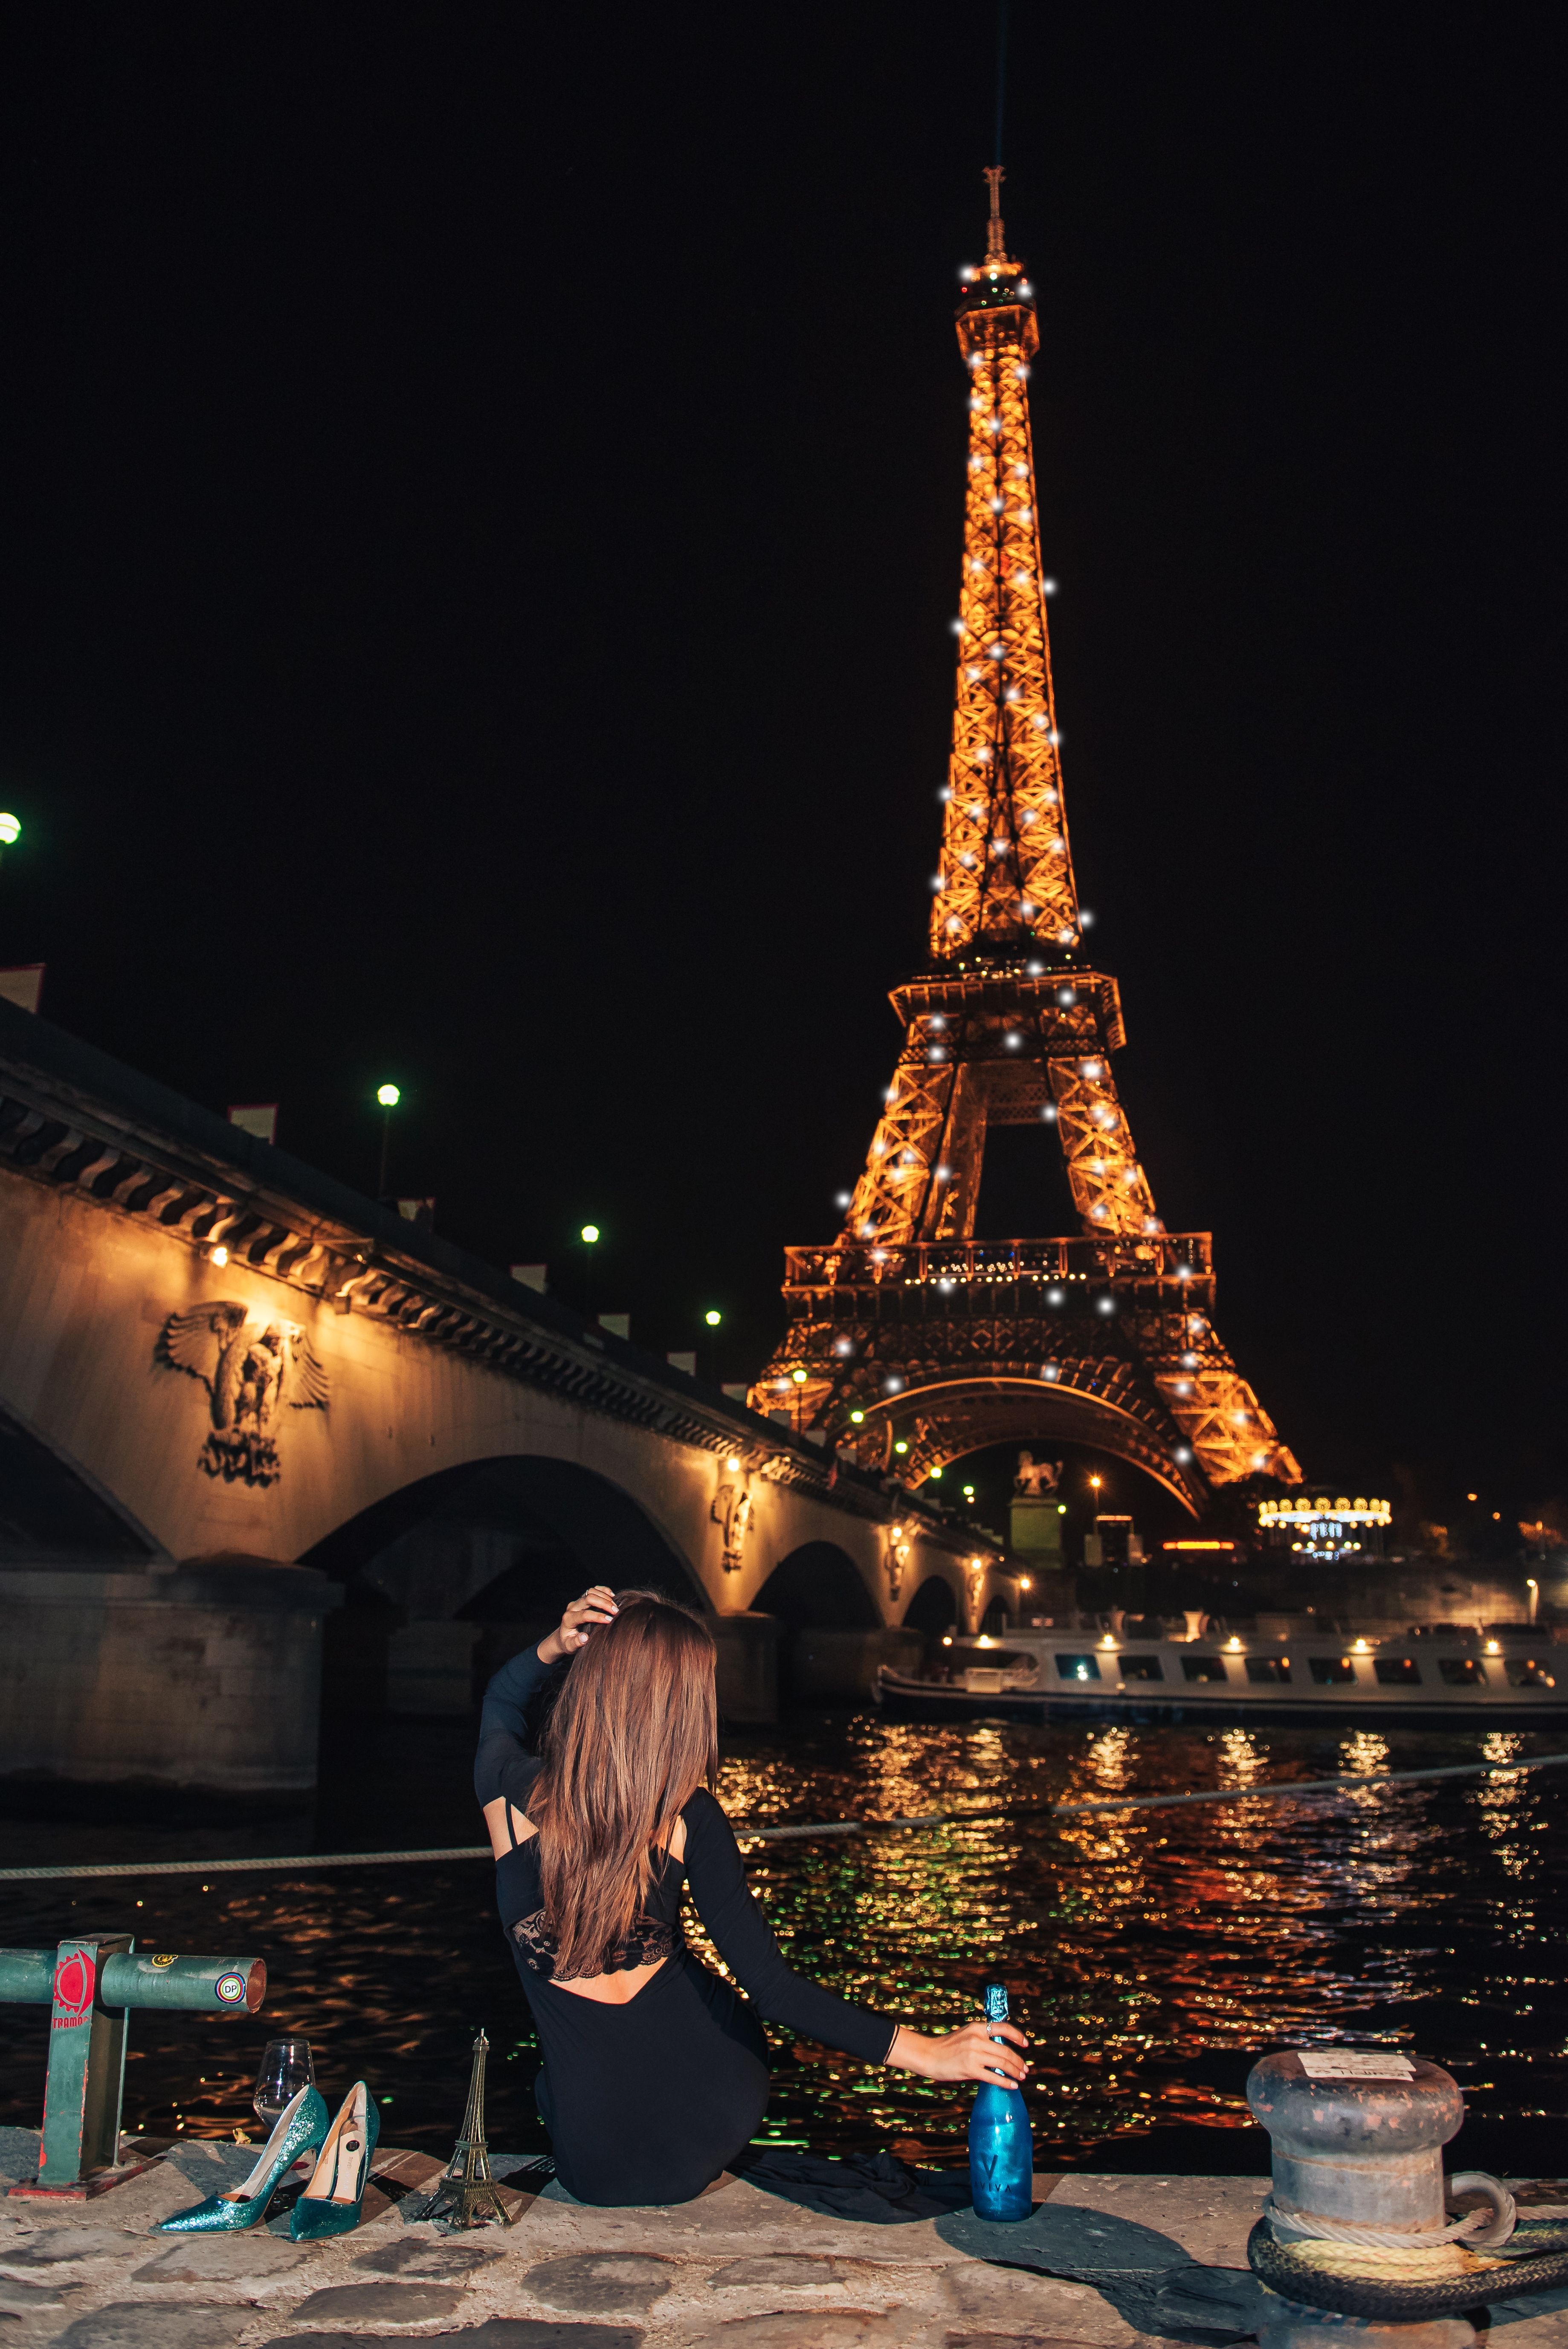 Night Photosession For A Girl In Paris With Parisphotographer Girl In Front Of The Eiffel Tower At Night Wit Paris At Night Eiffel Tower At Night Paris Photos